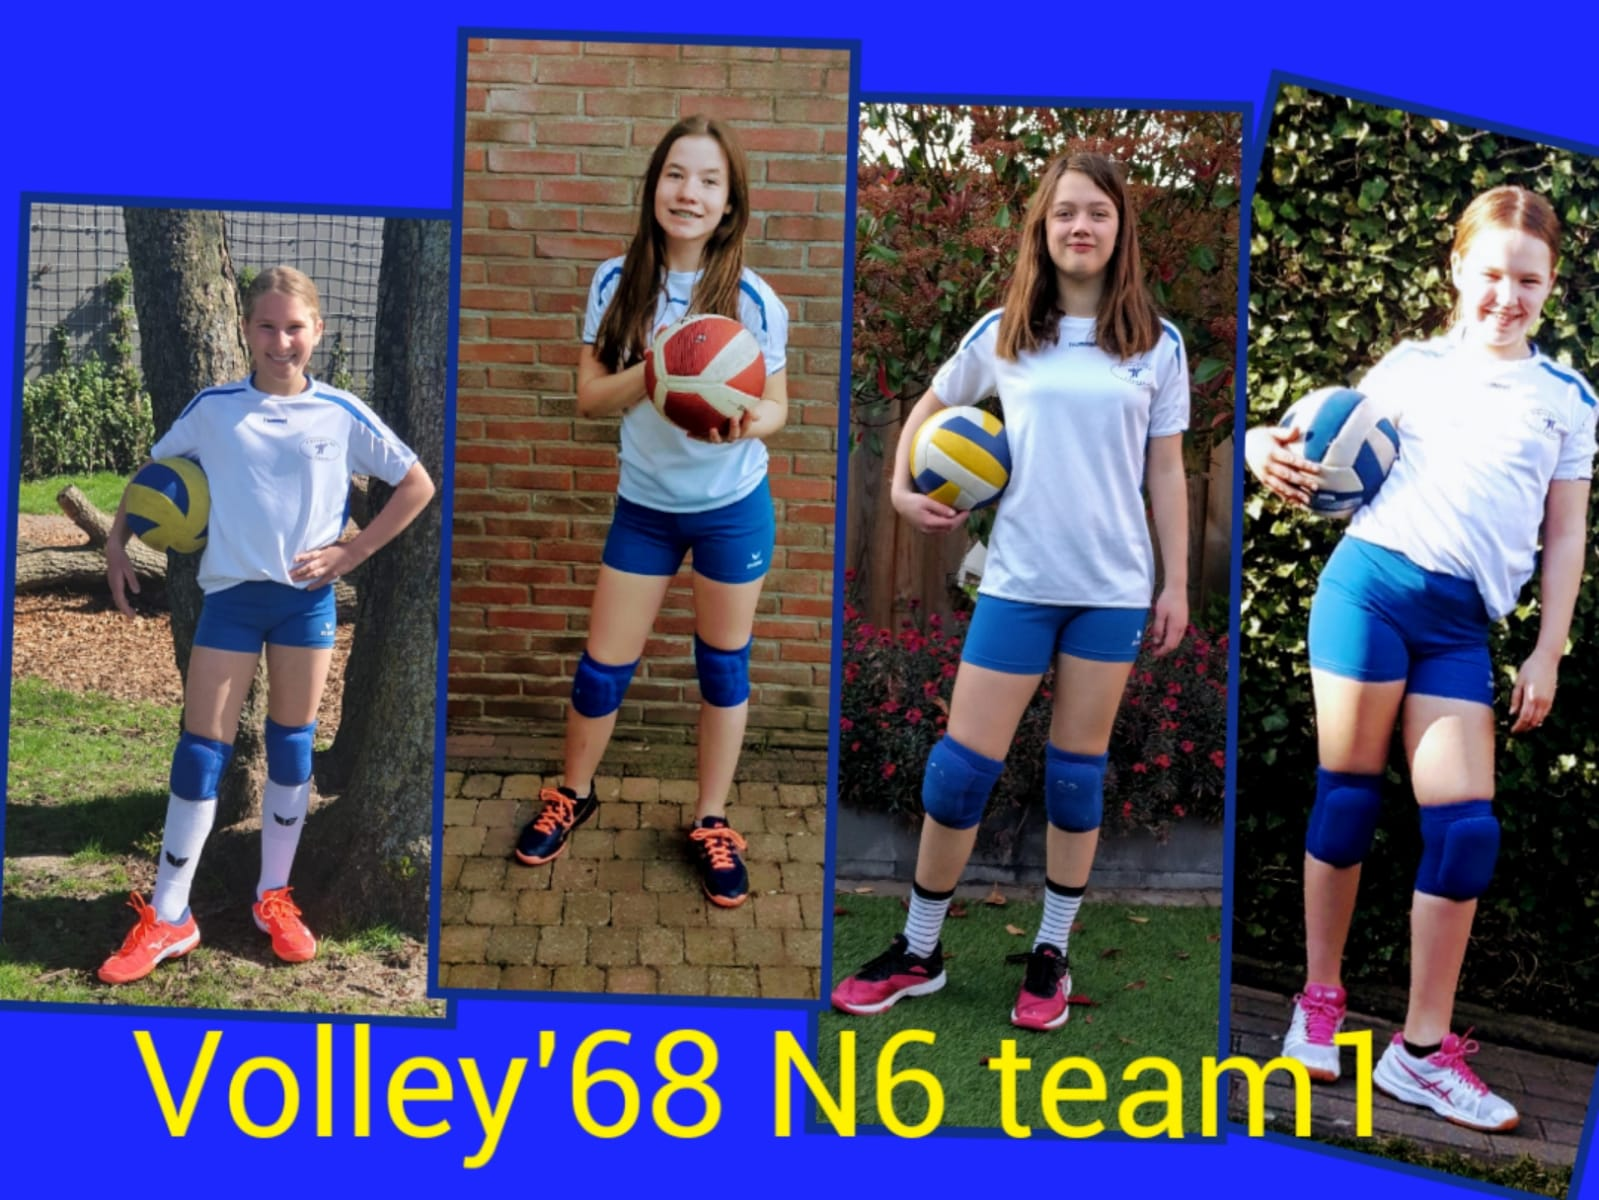 Volley 68 N6 team 1 kampioen